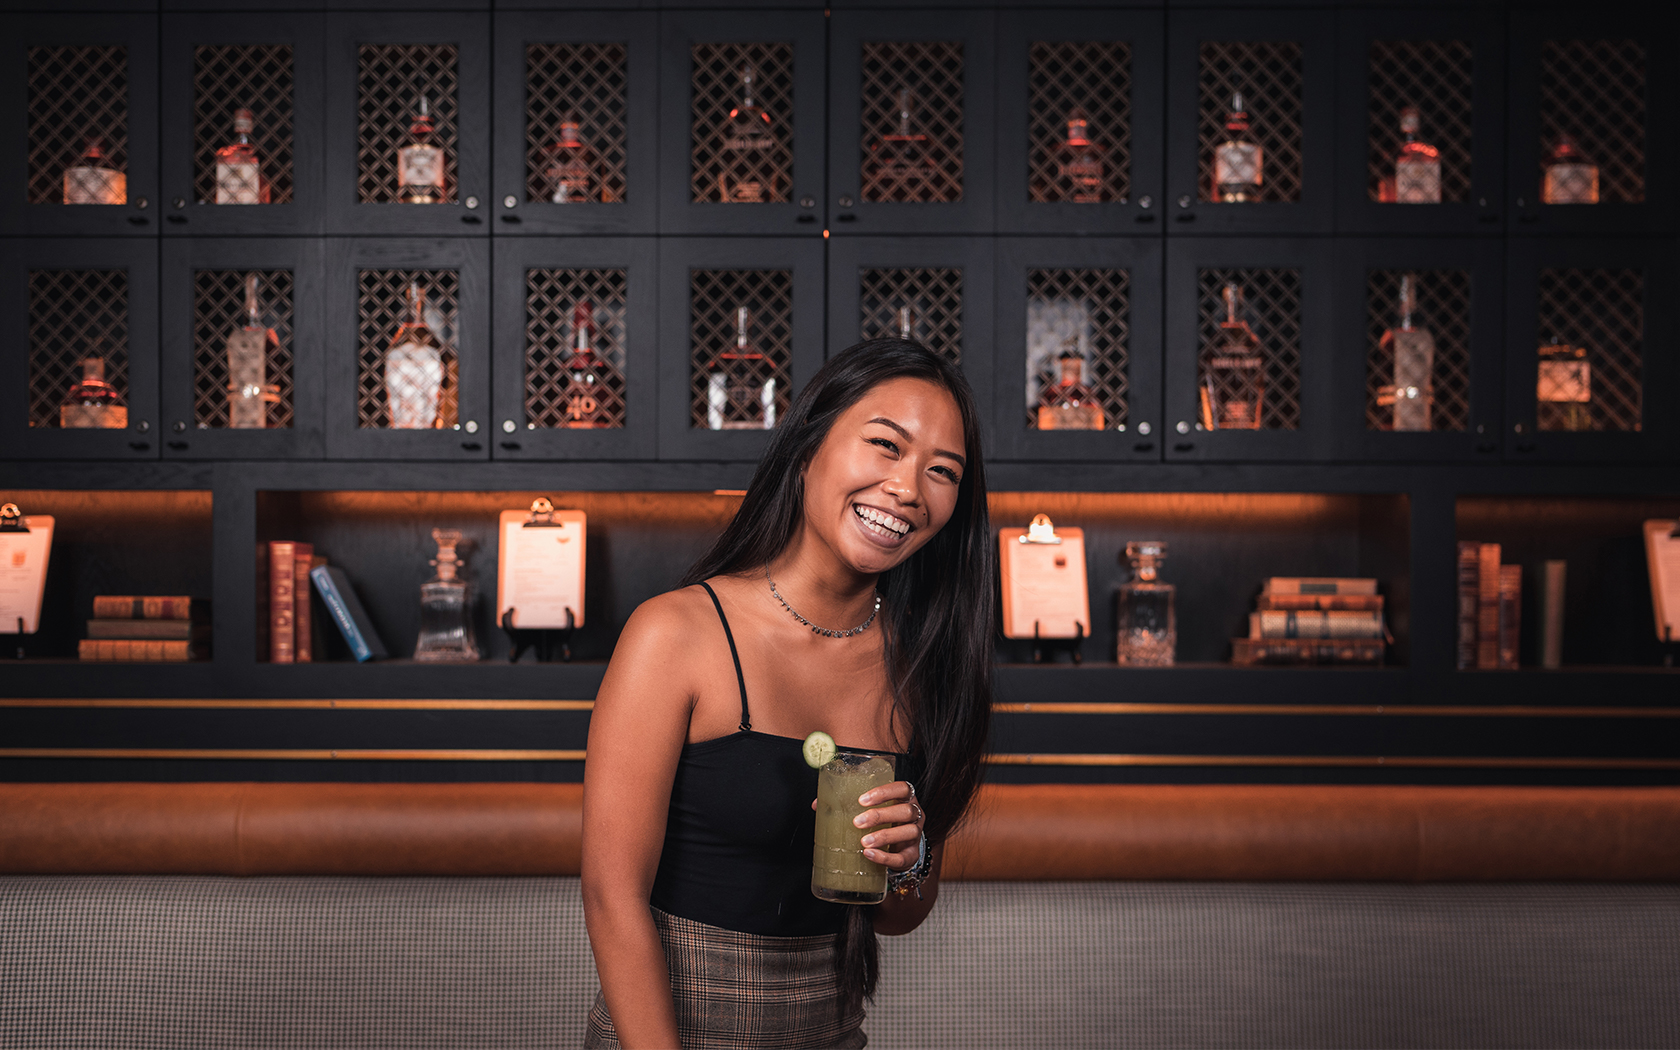 woman smiling in front of wall with whiskey bottles